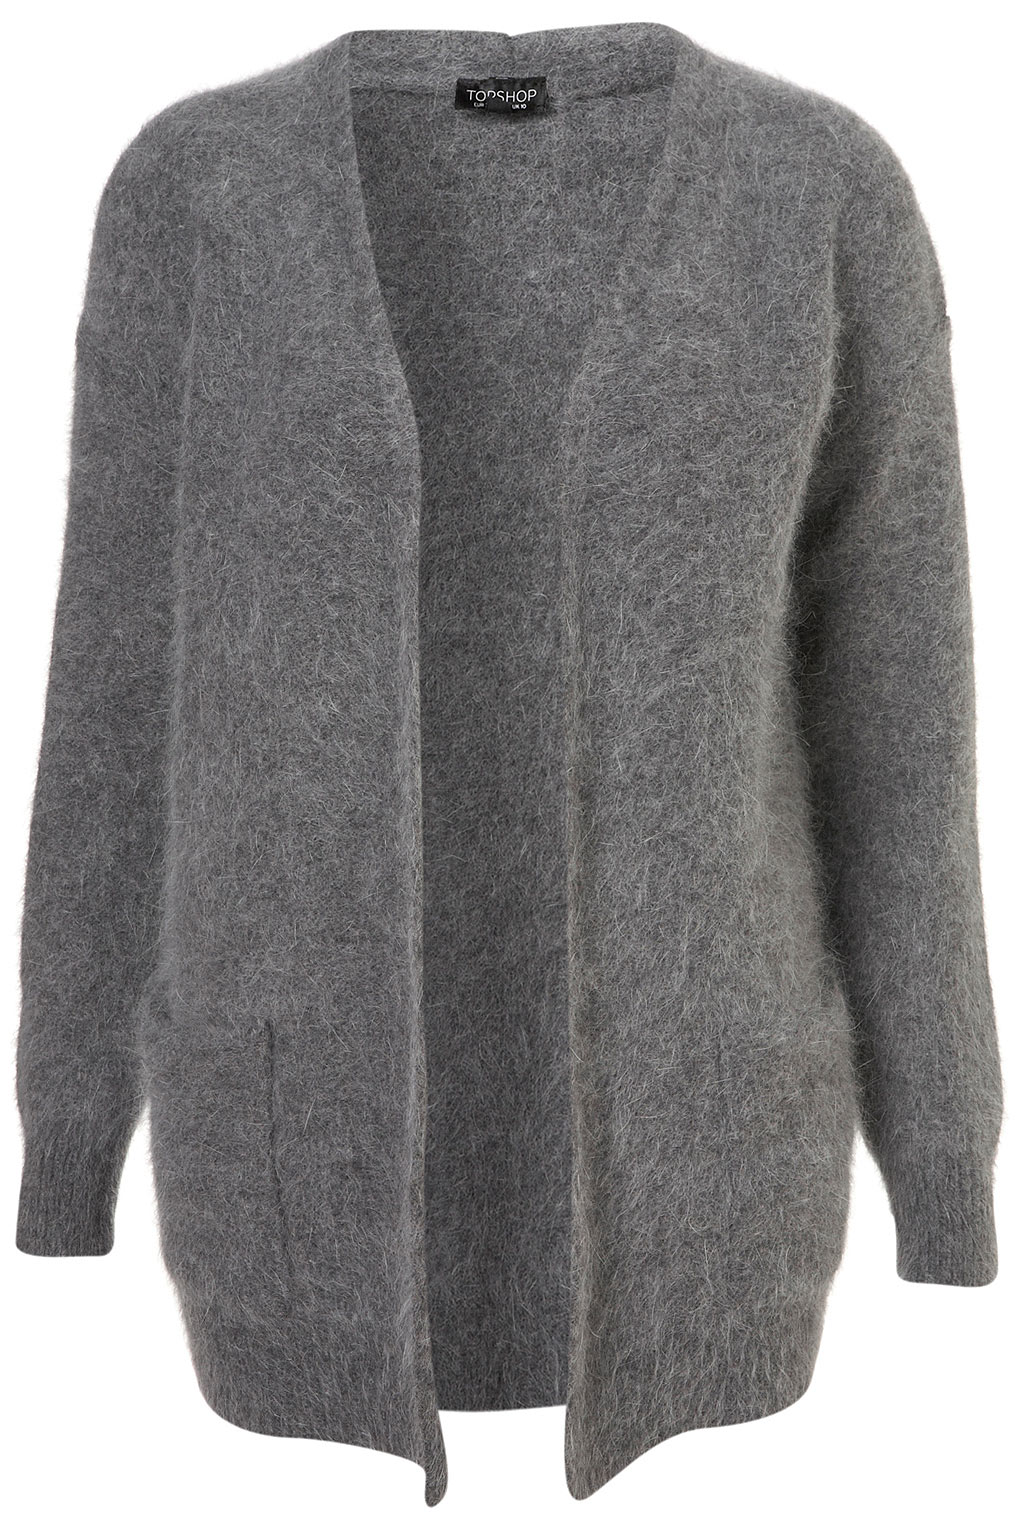 Topshop Knitted Super Fluffy Cardigan in Gray | Lyst